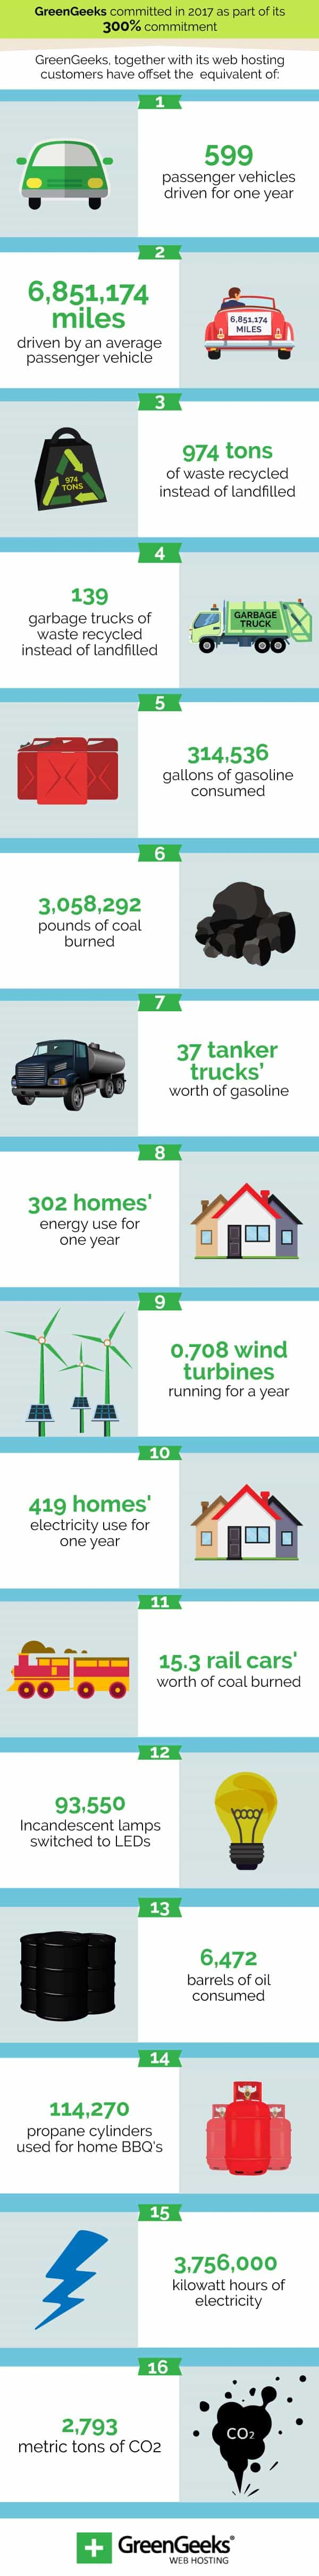 GreenGeeks Renewable Energy Offsets Infographic